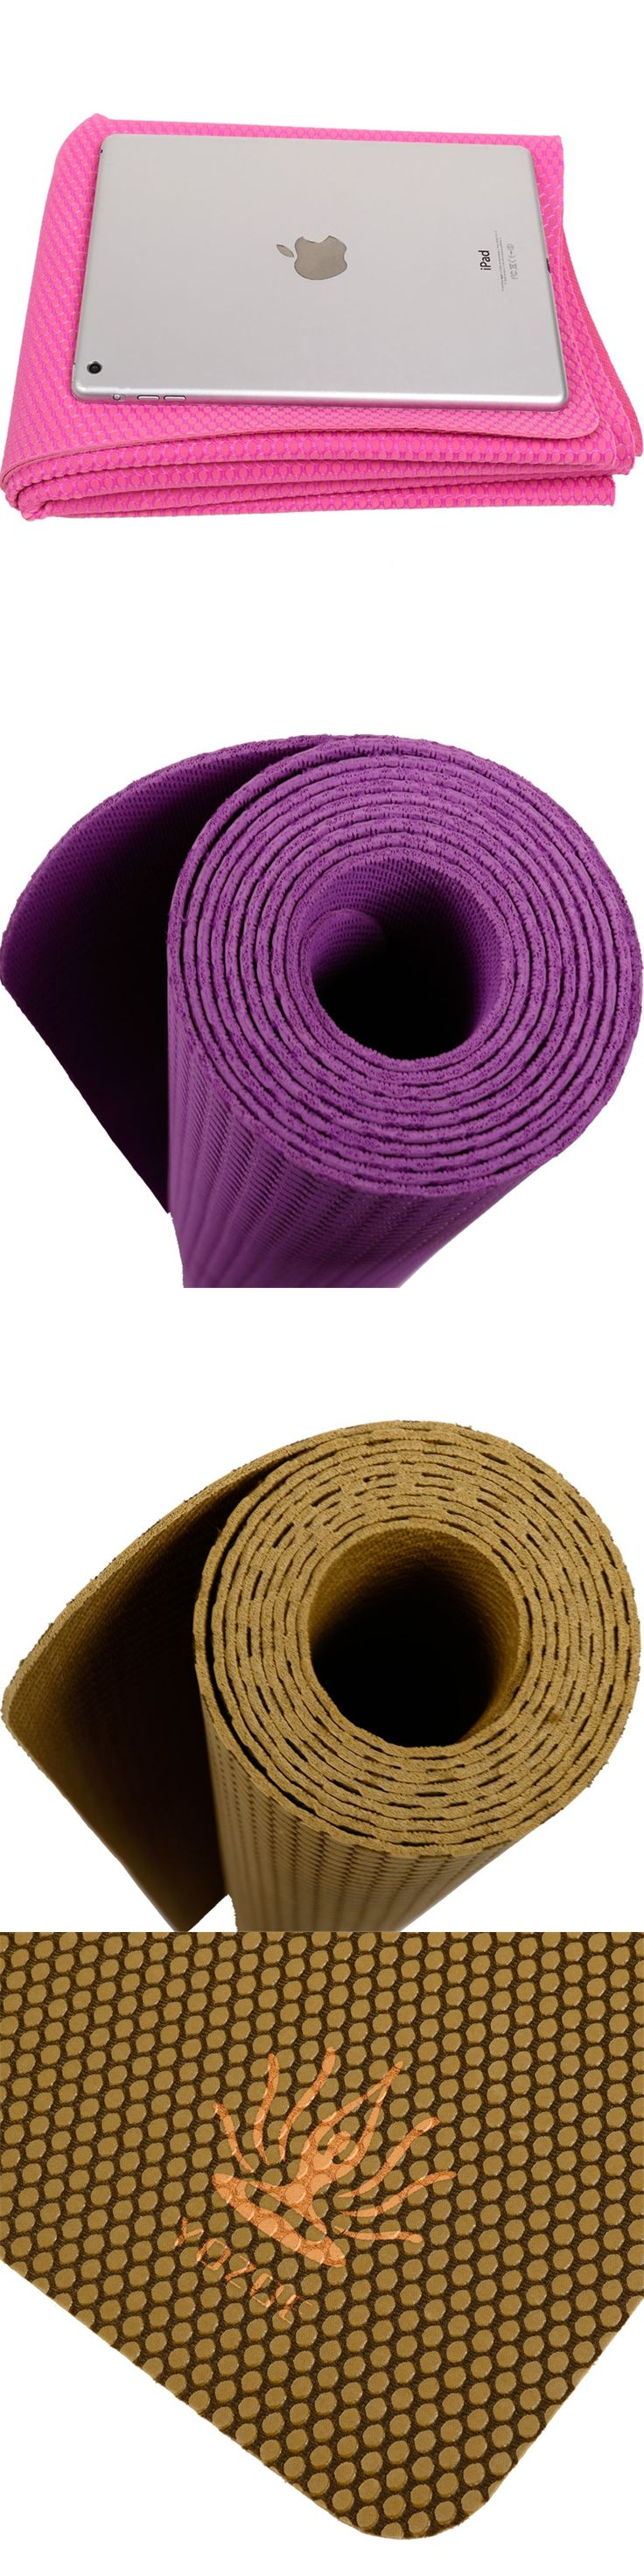 2017 High Quality Foldable Non-slip Surface Light Weight Comfortable 1.5mm Natural Rubber Yoga Mat for Beginner with Bag